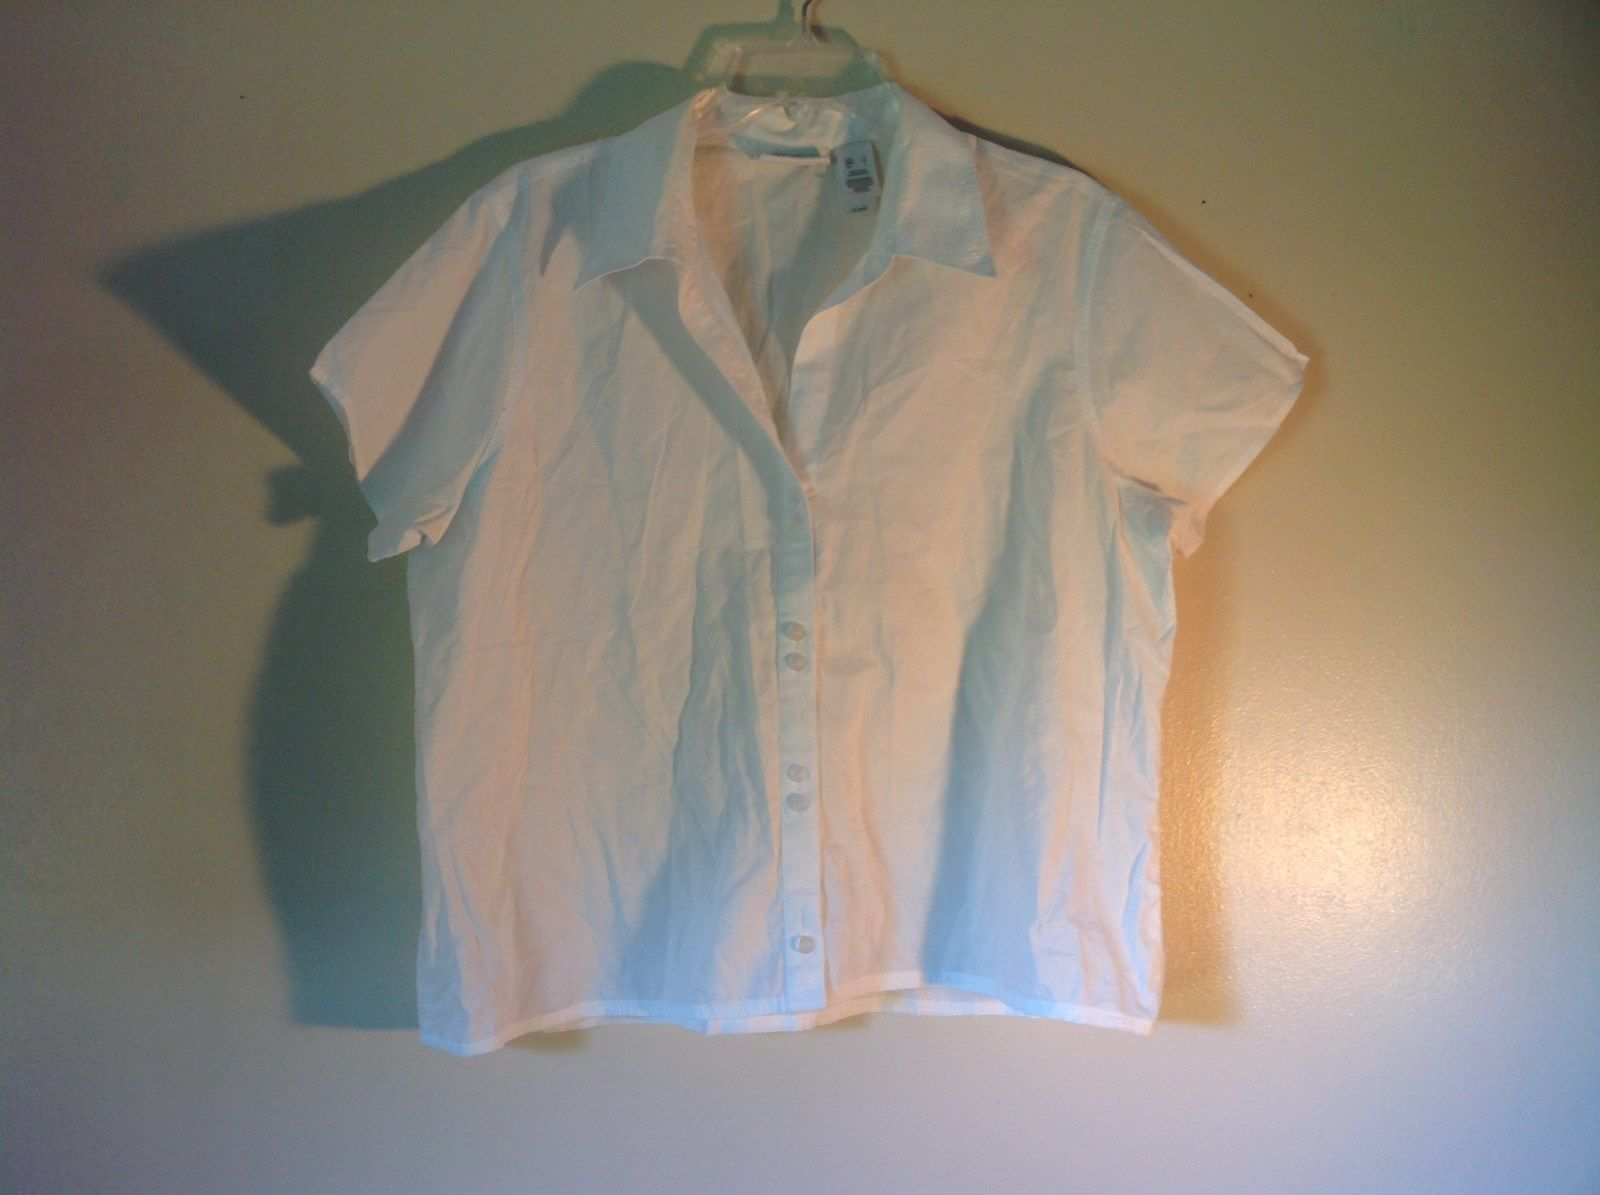 Short Sleeve White Casual Button Up Shirt by Liz Claiborne Size Large